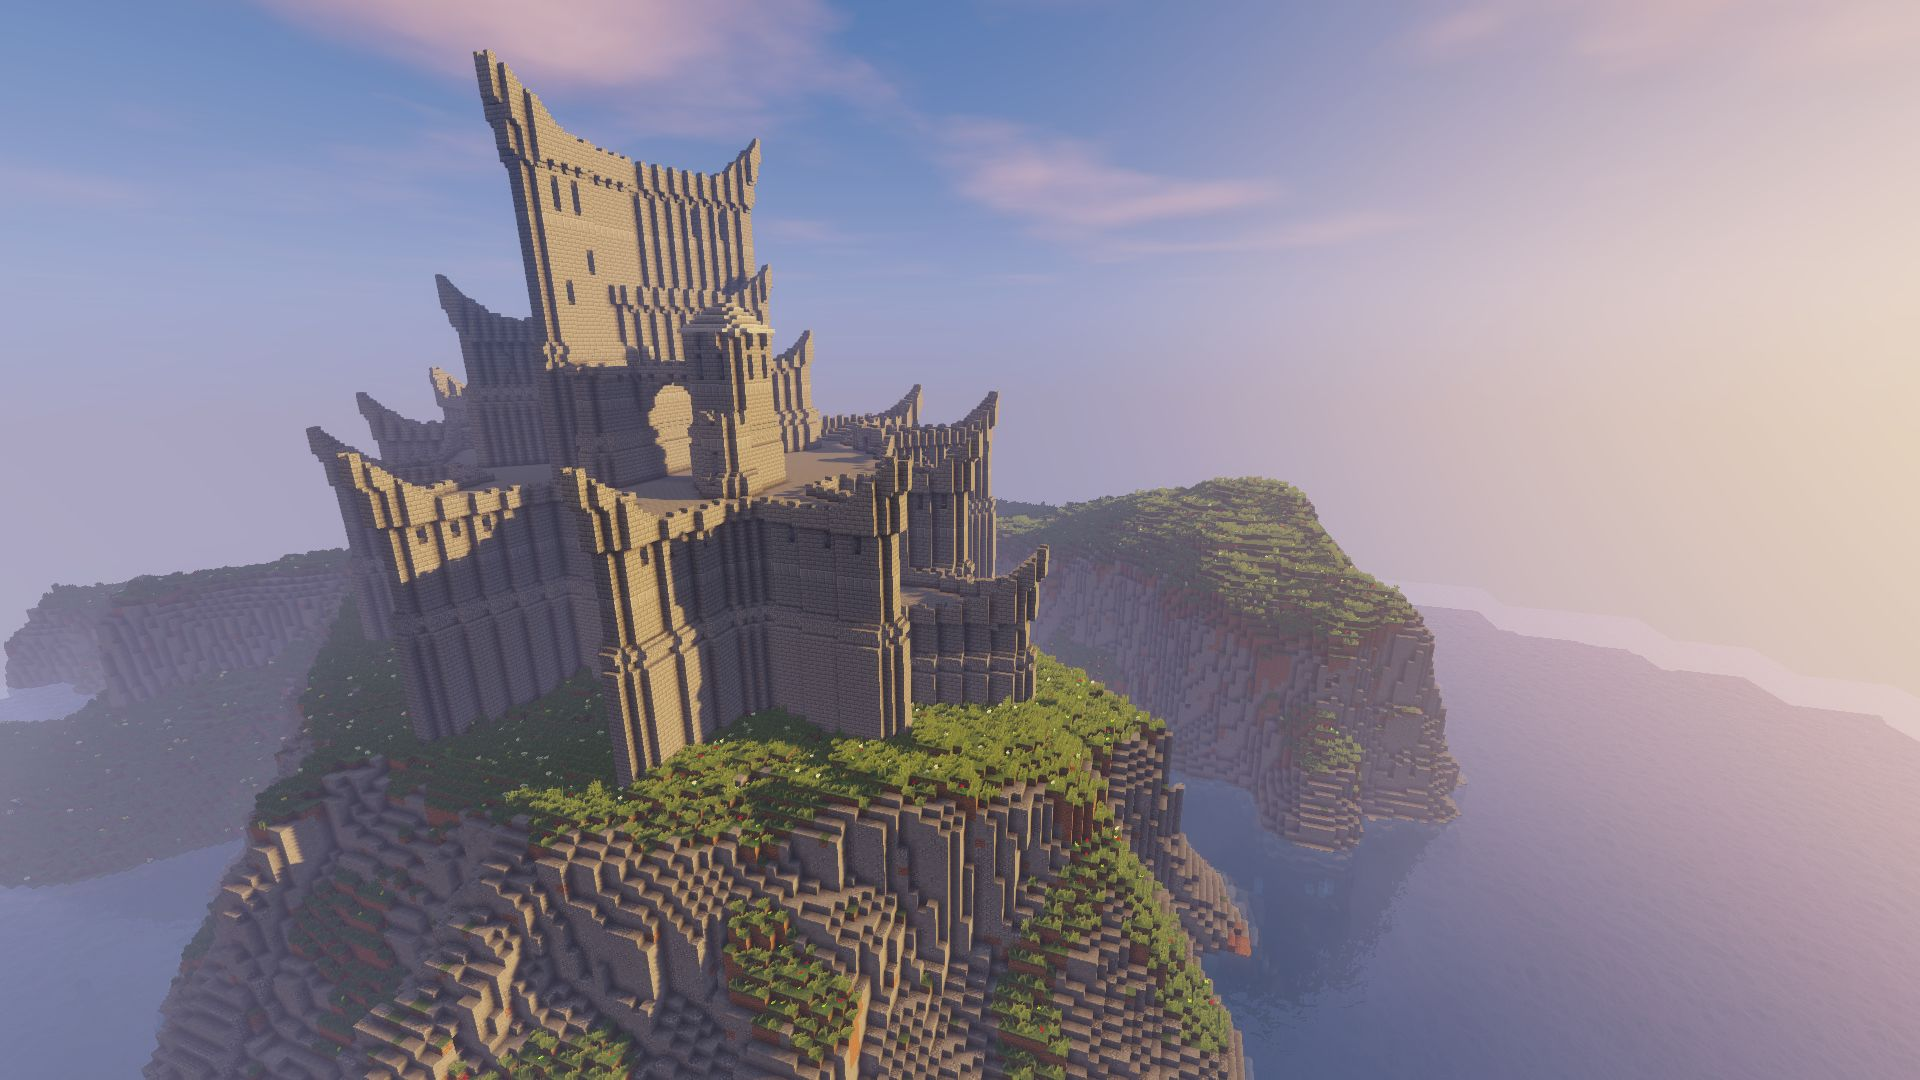 Dragonstone map game of thrones legendary castle dragonstone castle from games of thrones gumiabroncs Choice Image